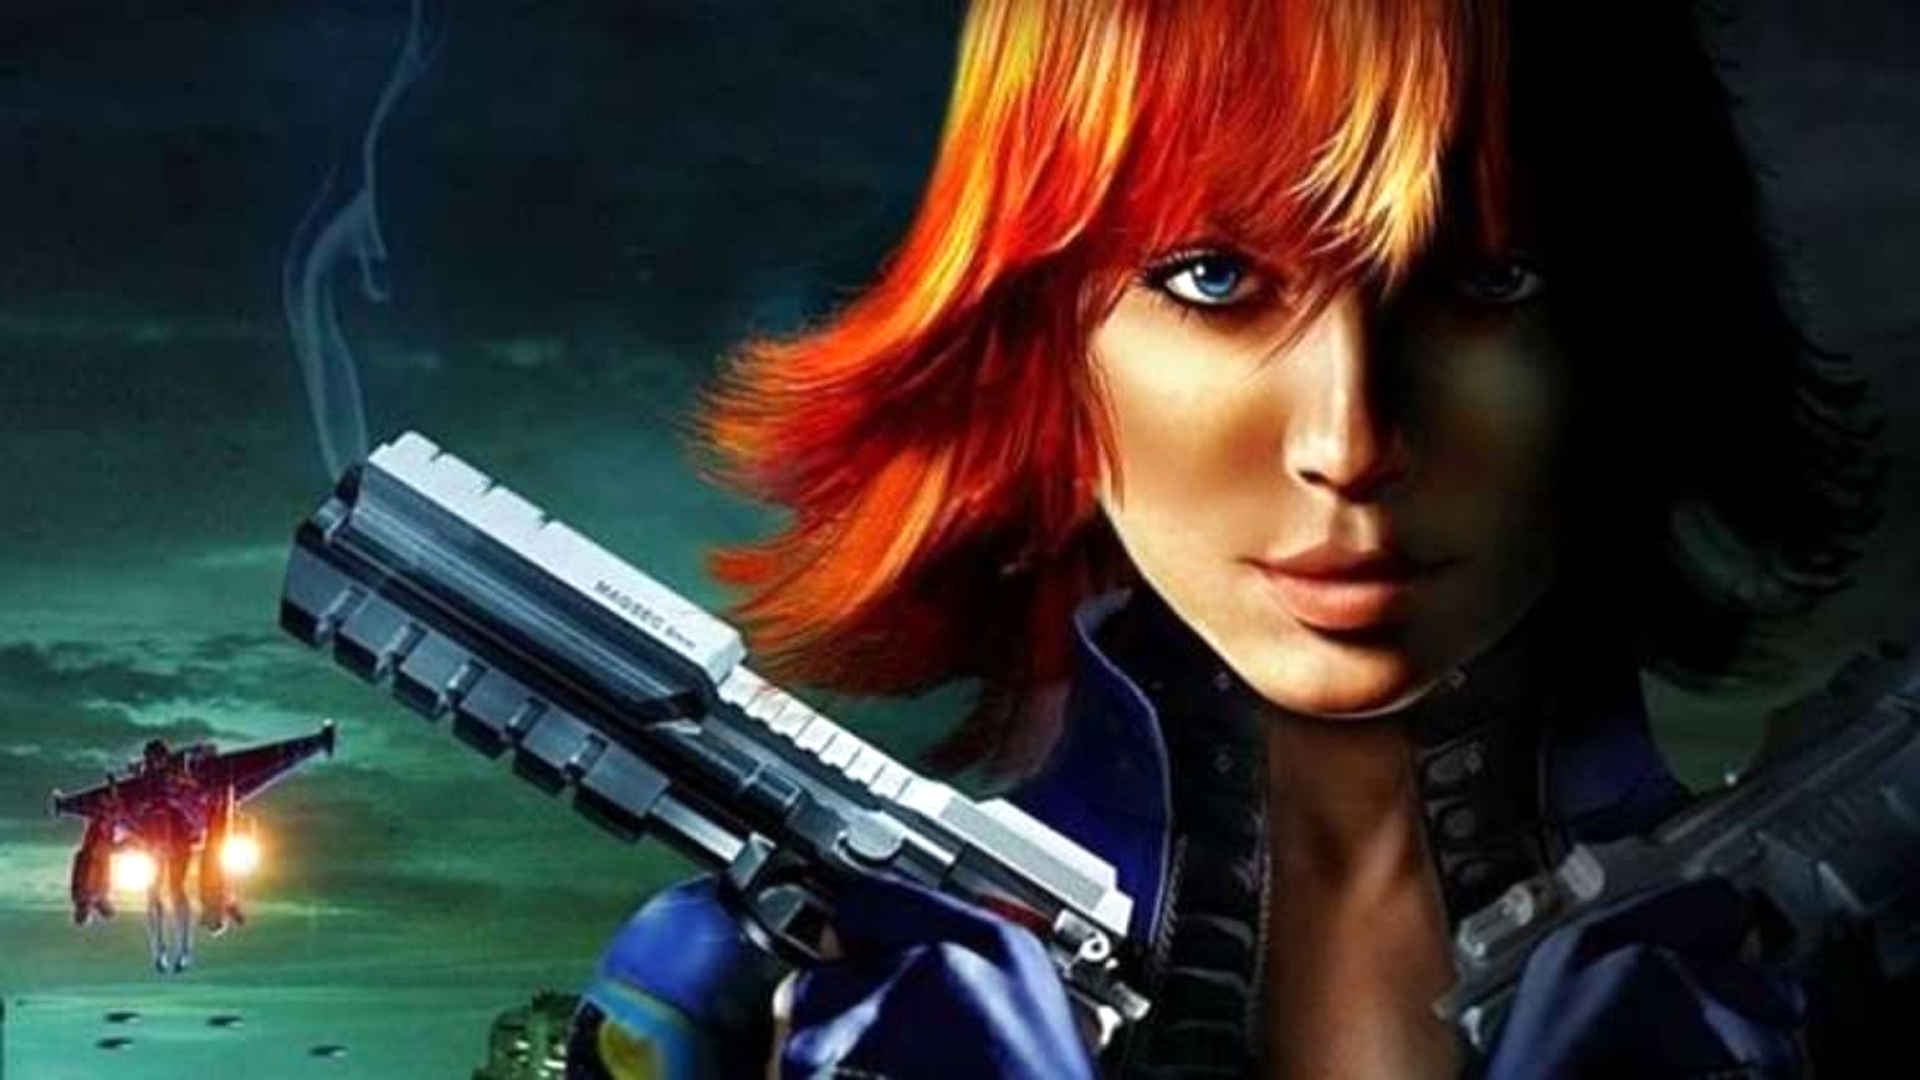 """Xbox head: """"it's awesome"""" that Perfect Dark gives them another female lead"""